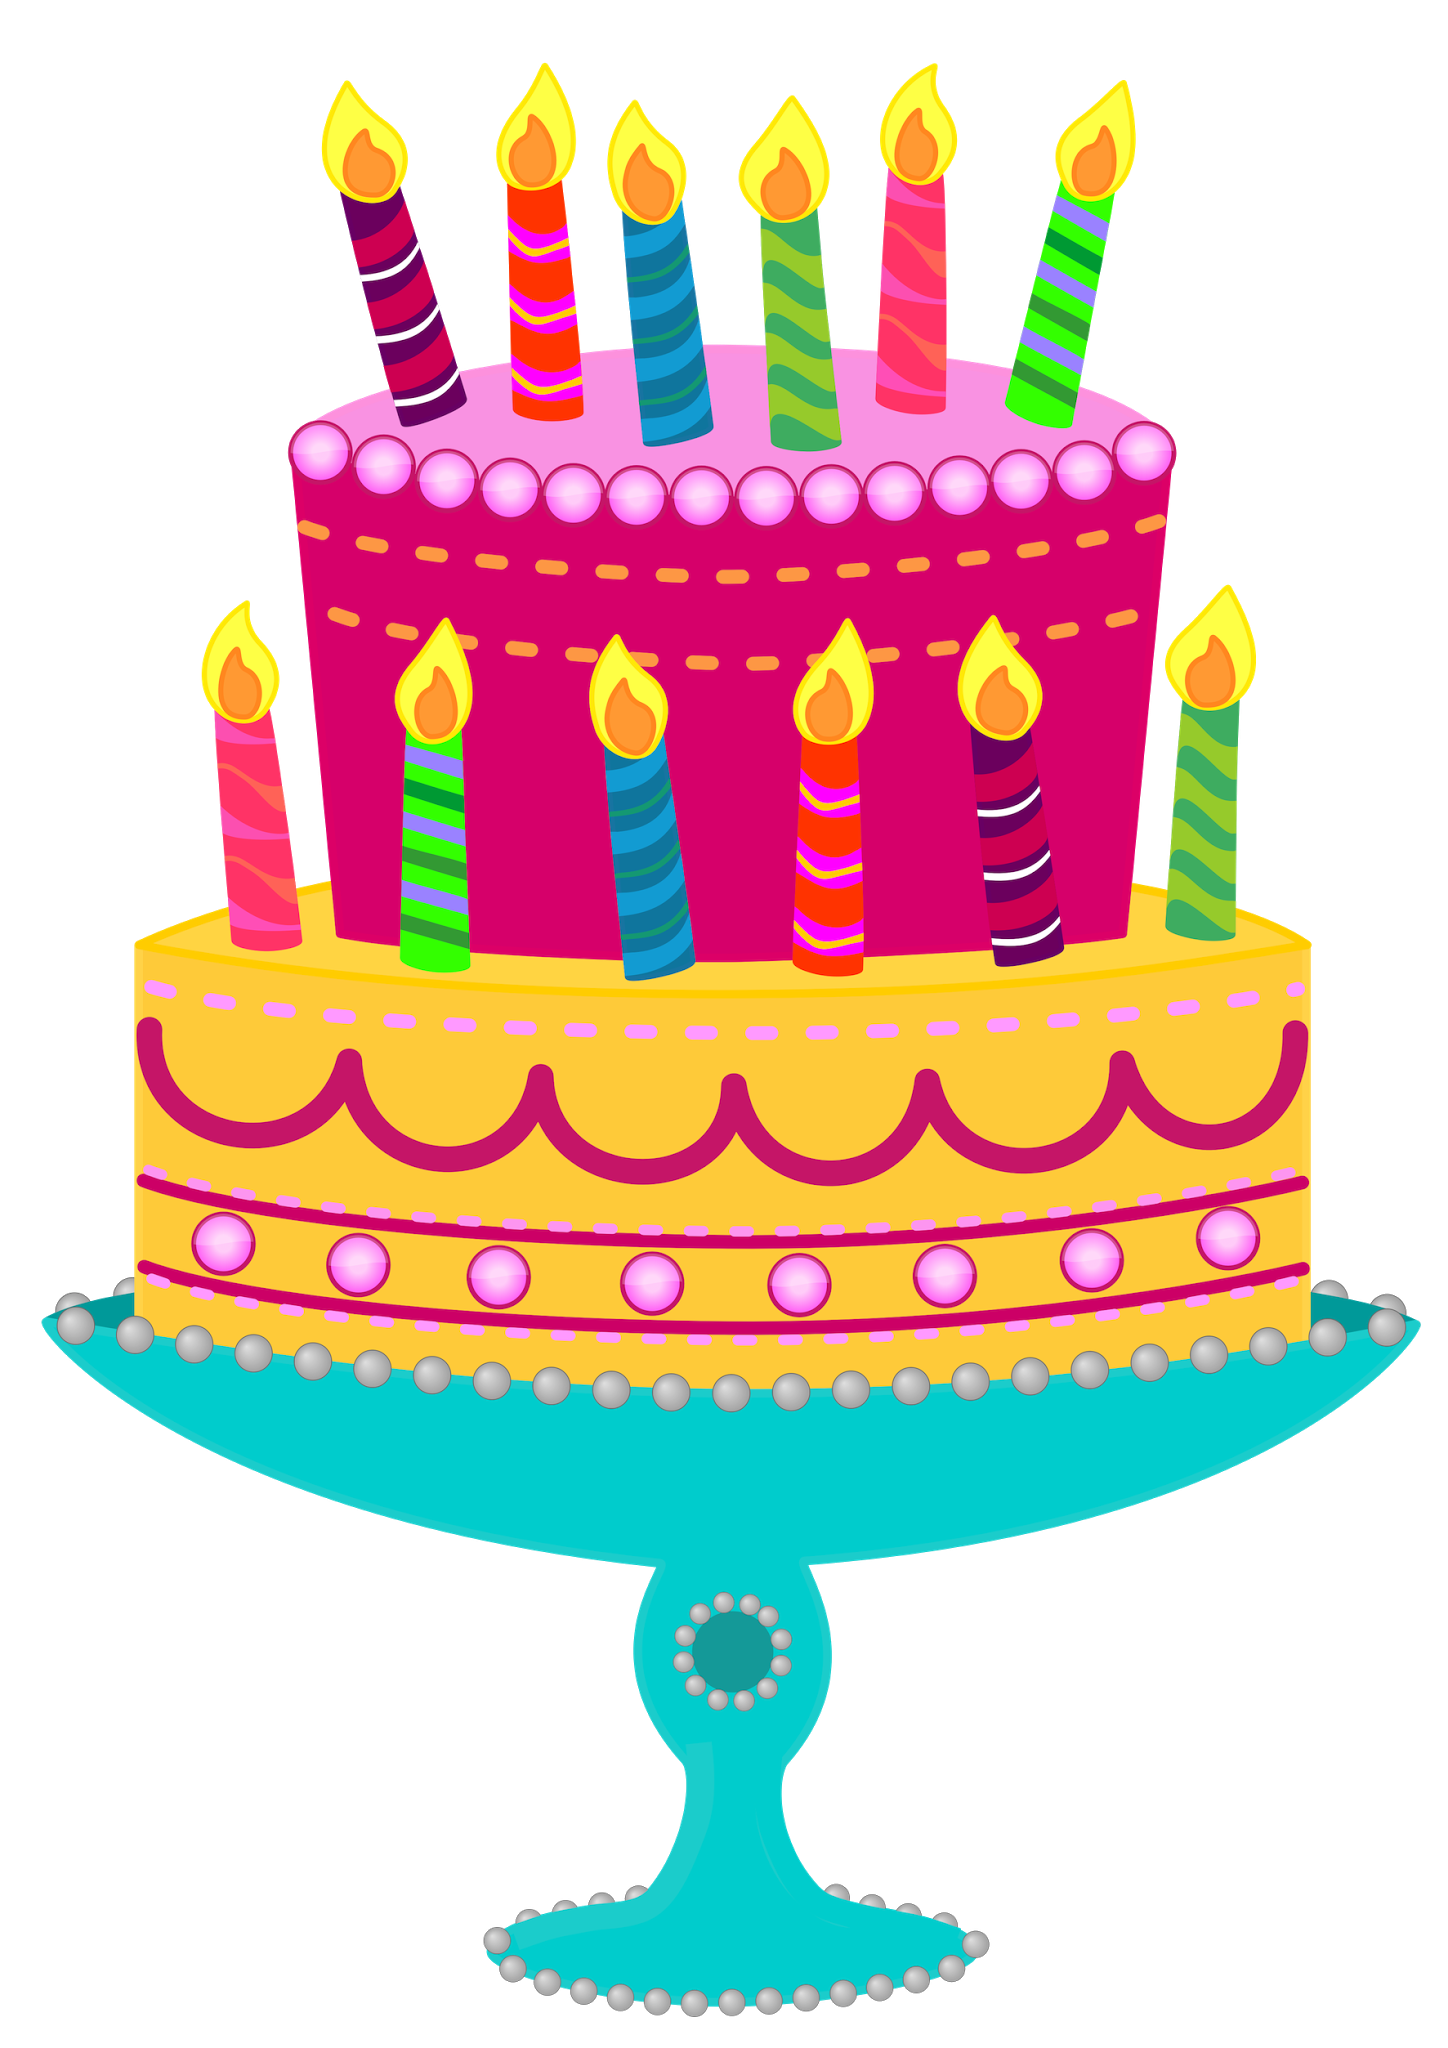 banner royalty free download Free cake images cliparts. Birthday clipart.